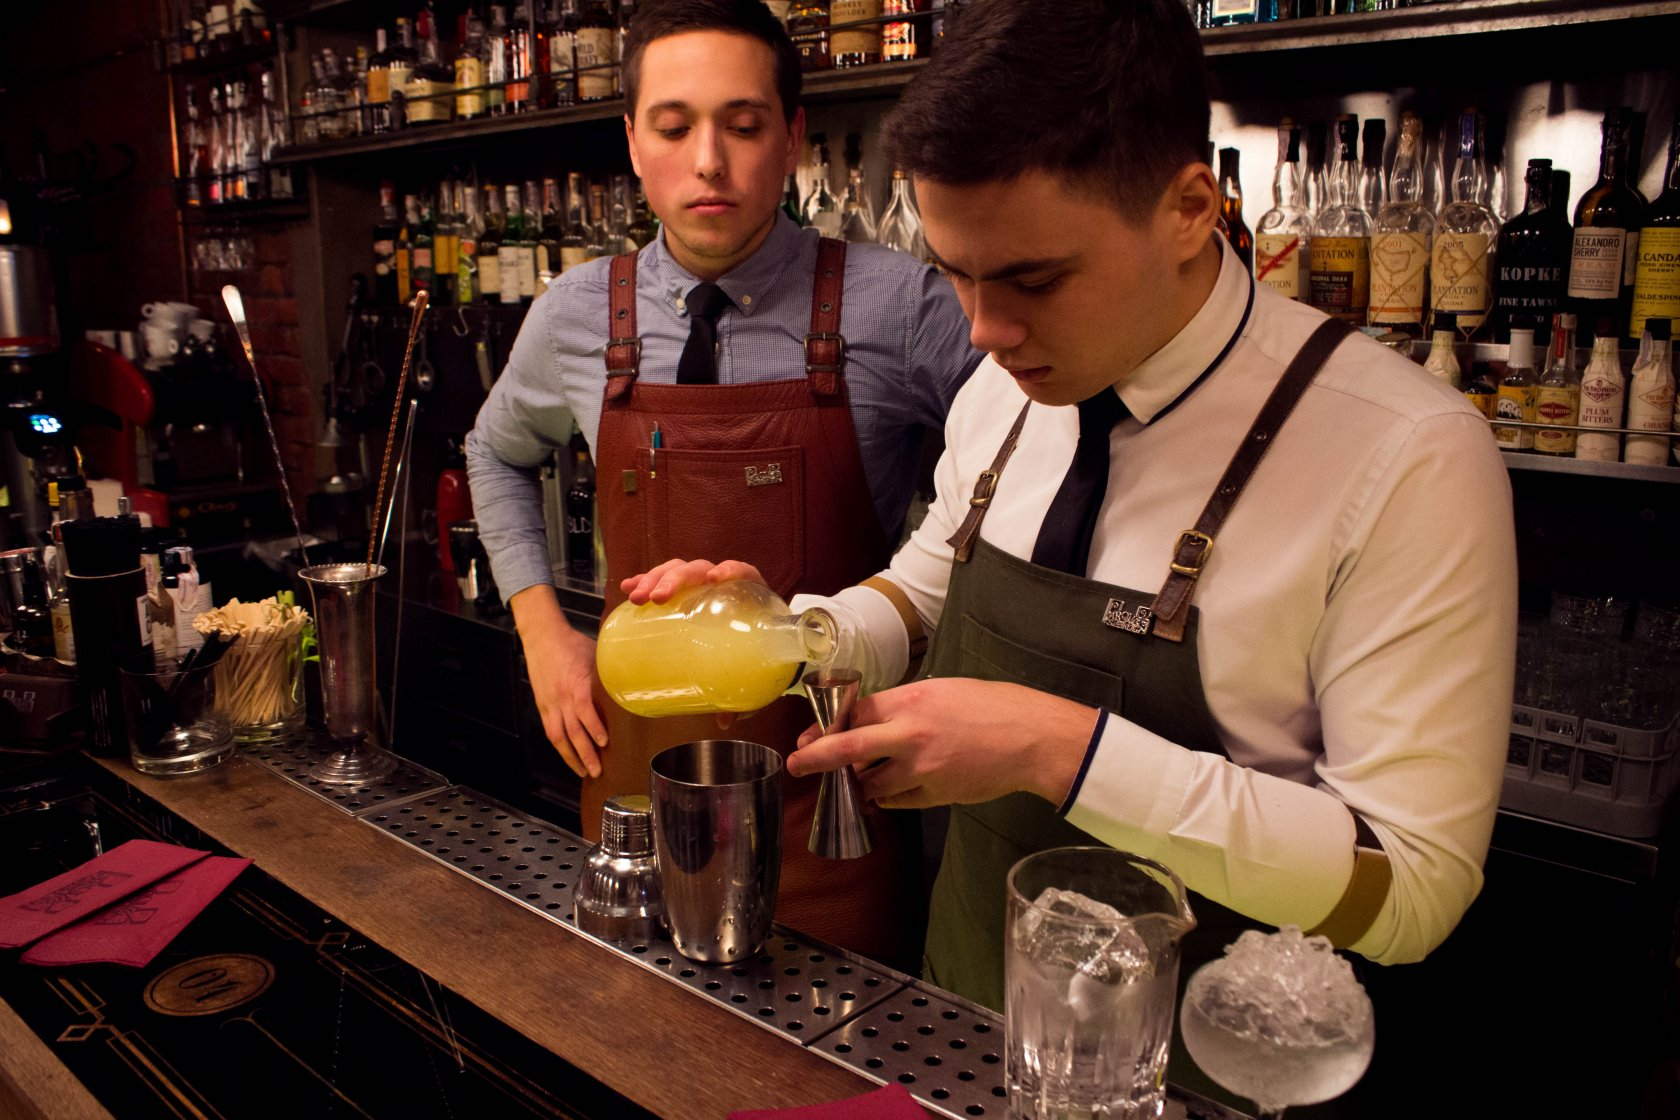 fridays bartender job overview and selection A tgi fridays bartender mixes and serves alcoholic and non-alcoholic drinks to guests of the bar and service bar following standard recipes and the company's policies merchandises drinks and is attentive to guests, making them feel welcome, at all times.